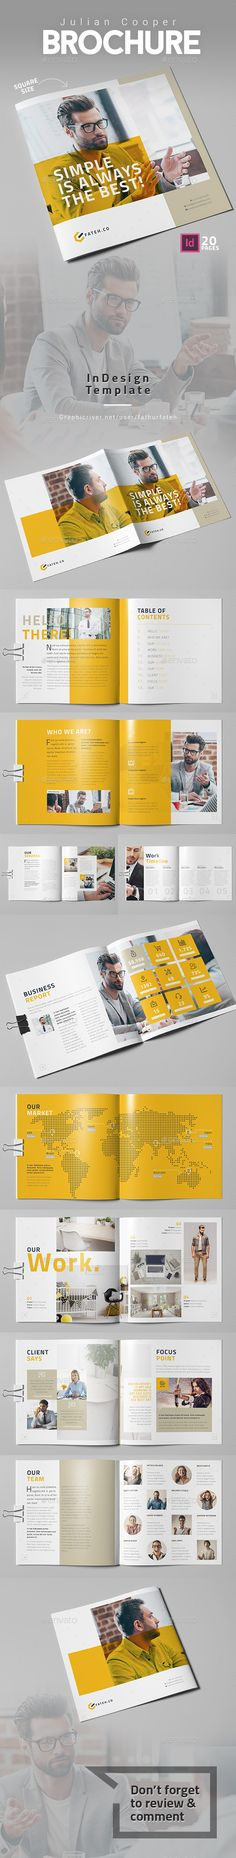 Julian Cooper Brochure  Square — InDesign INDD #marketing #professional • Available here → https://graphicriver.net/item/julian-cooper-brochure-square/18326758?ref=pxcr